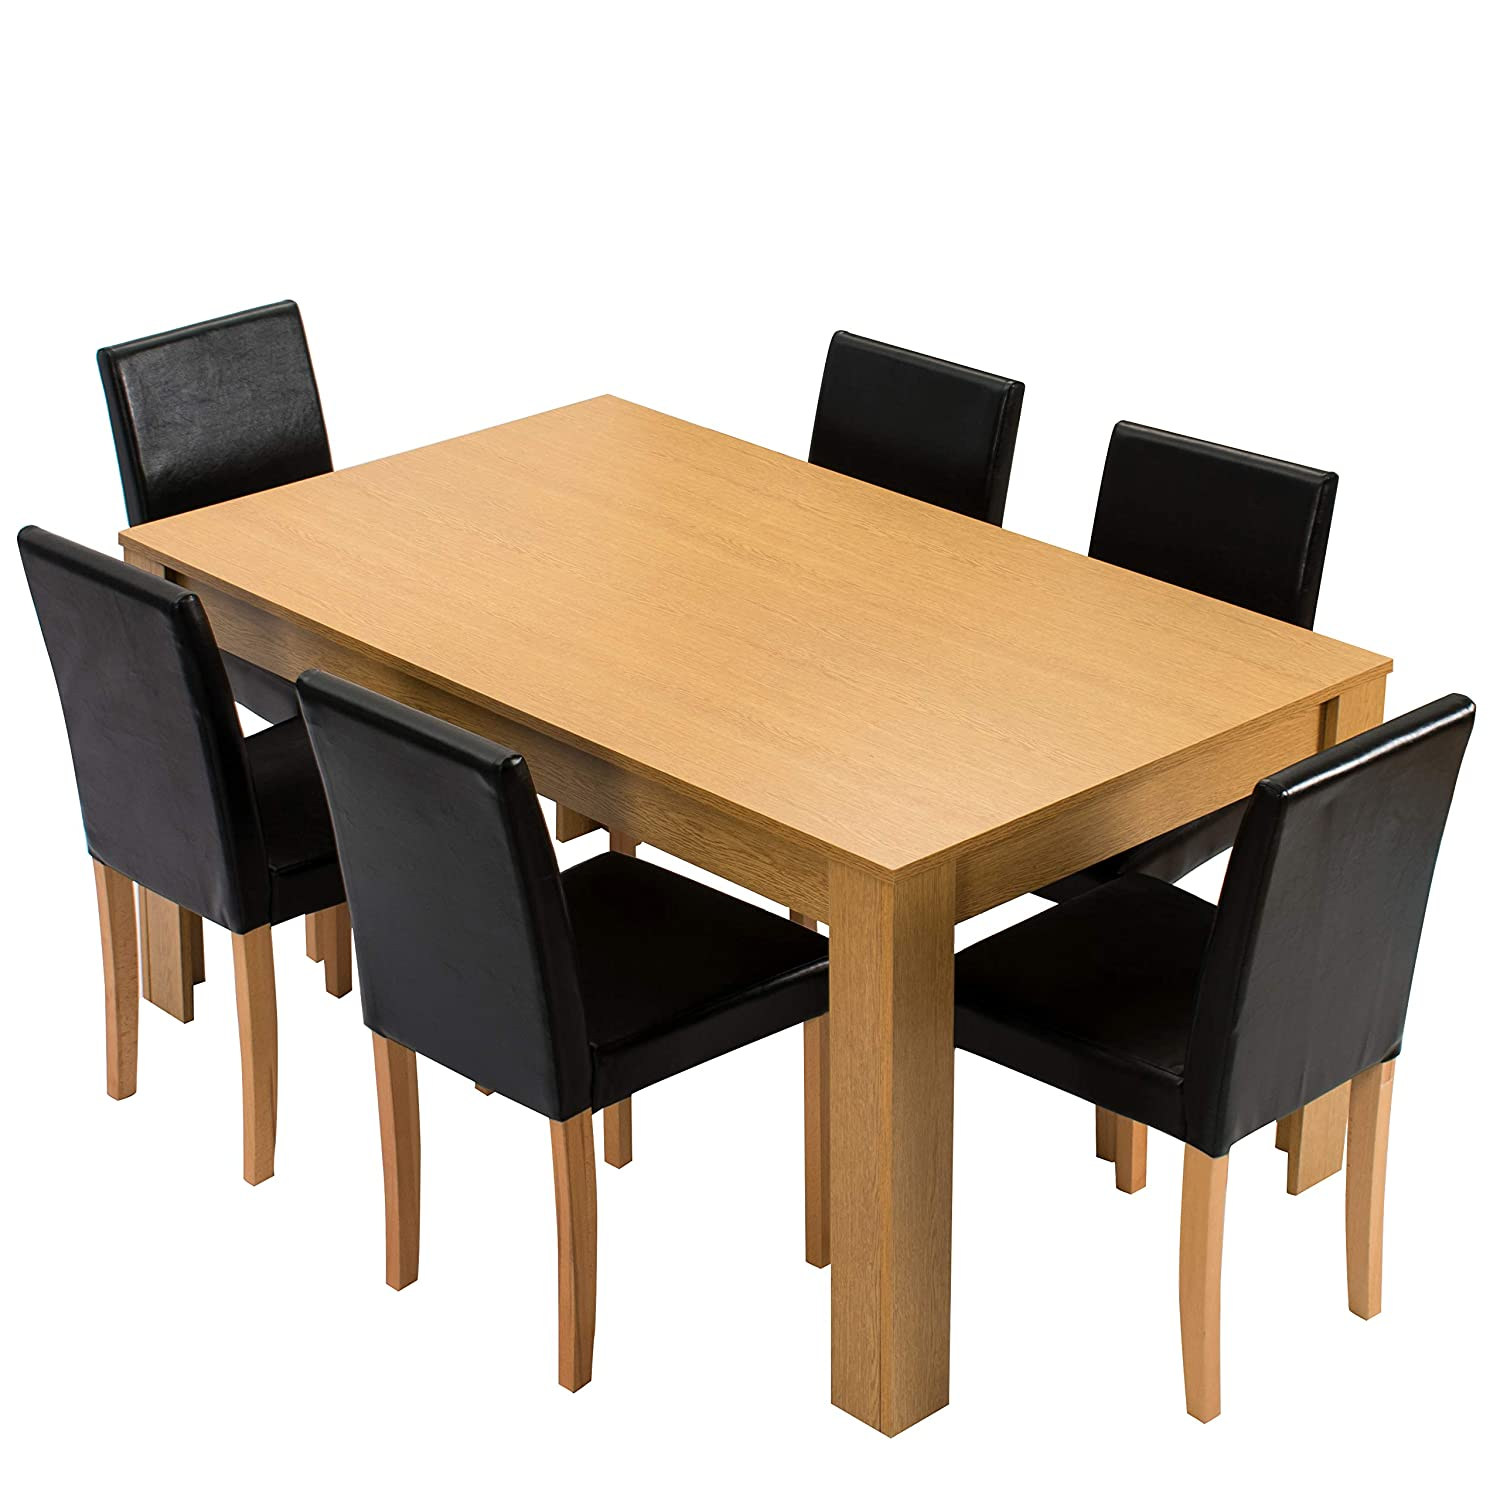 Cherry Tree Furniture 7-Piece Dining Room Set 6-Seater 150 X 90 CM Dining Table with 6 Chairs, Oak Colour Table with Black PU Leather Seats